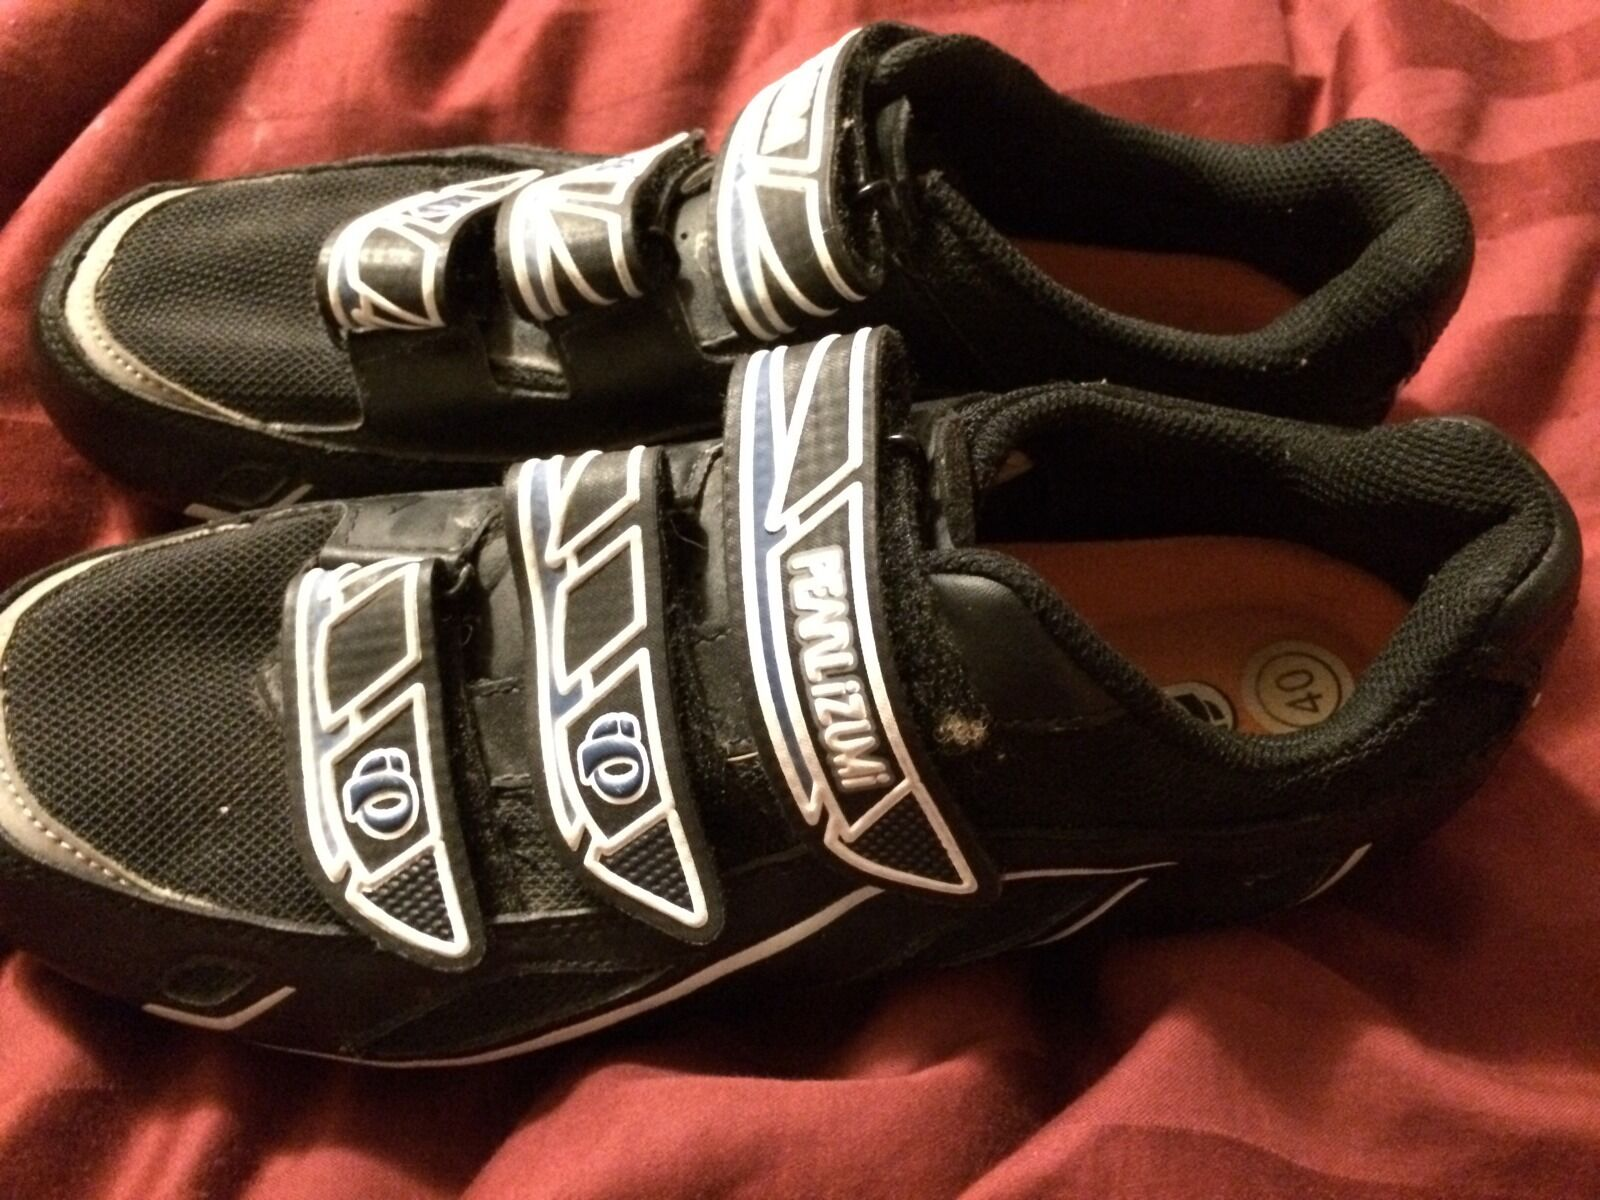 Pearl izumi MTB Mens mountain bike shoes, size 40